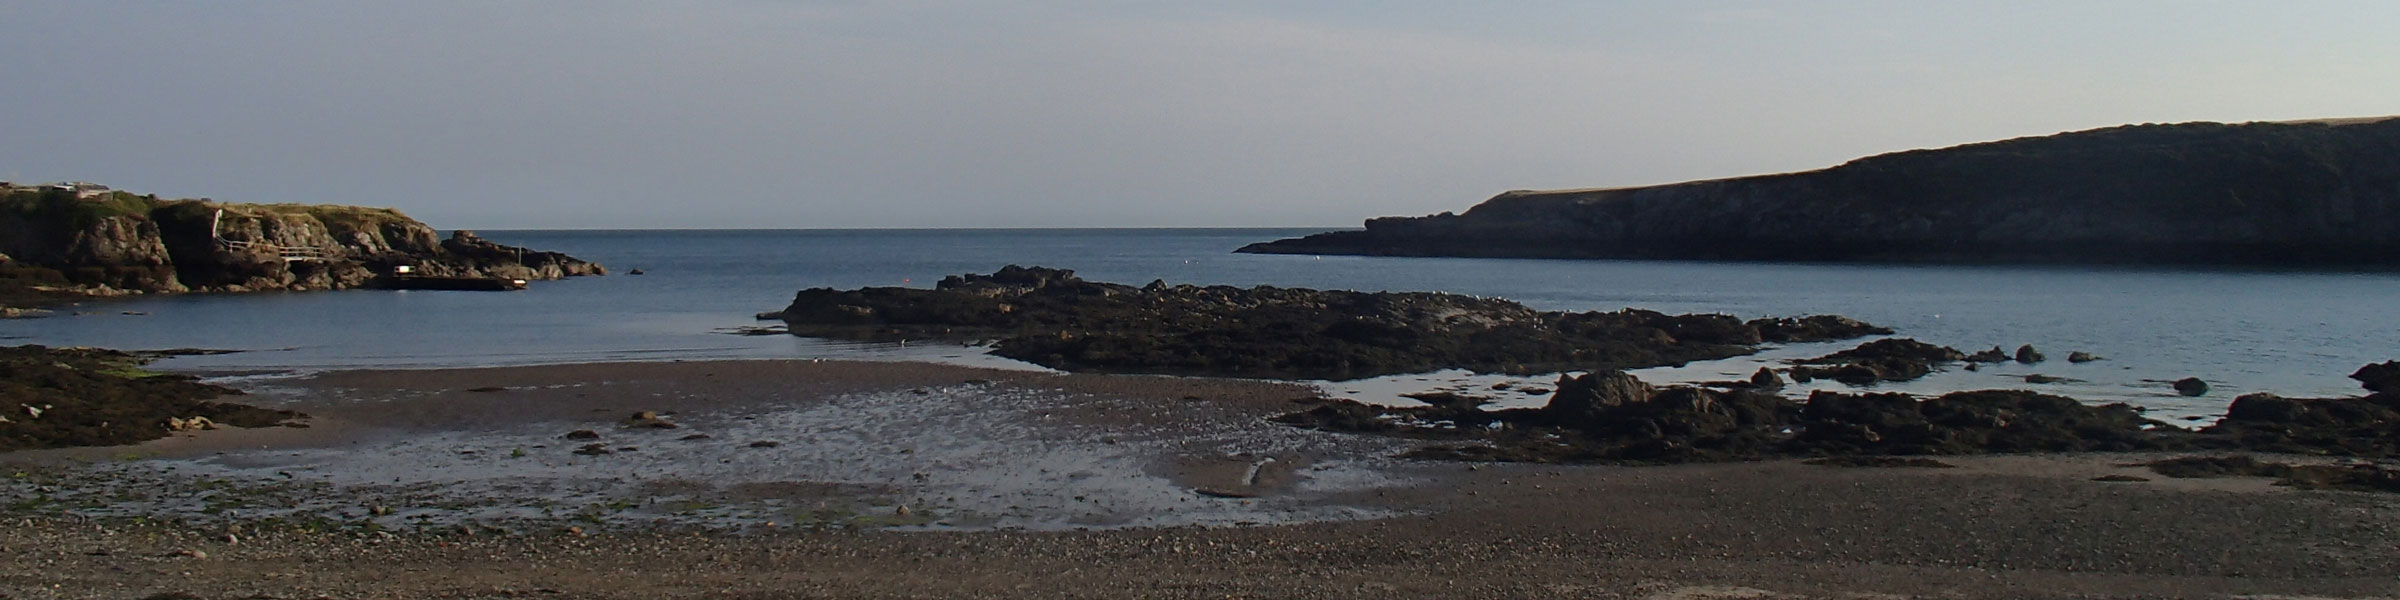 Traeth Bach, Cemaes Bay, Anglesey, North Wales